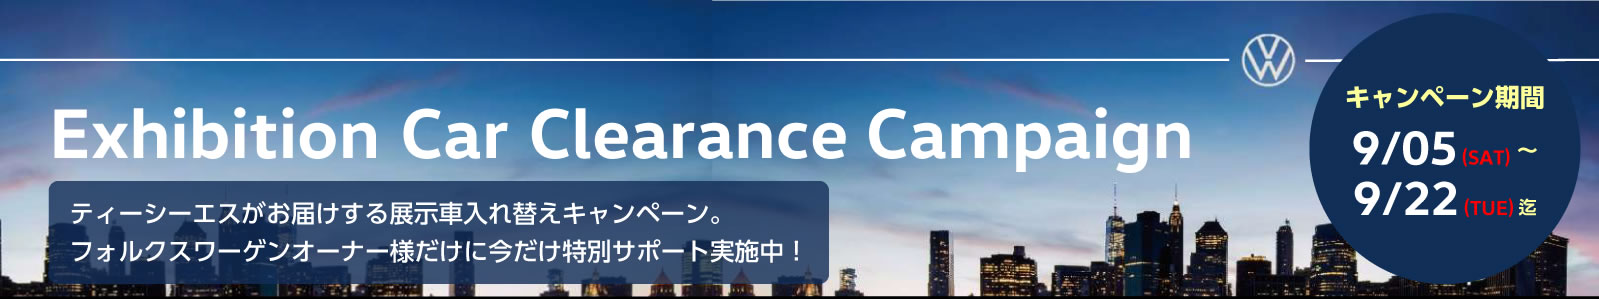 Exhibition CarClearance Campaign